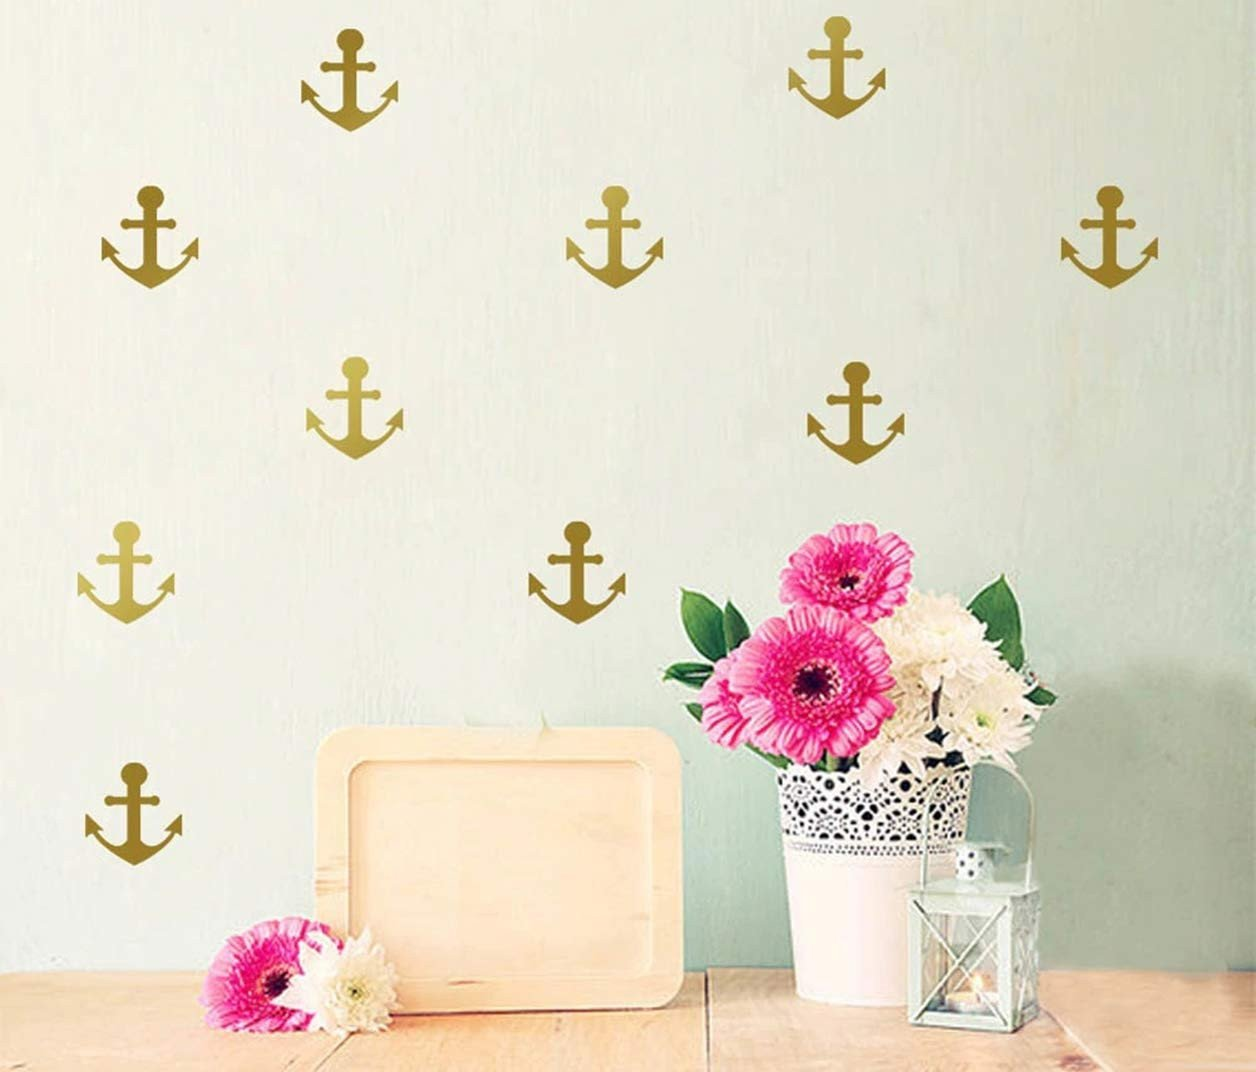 Wall Decoration for Girls Bedroom Awesome Amazon Gvgs Shop 12 Pack Anchor Pattern Kid Art Diy